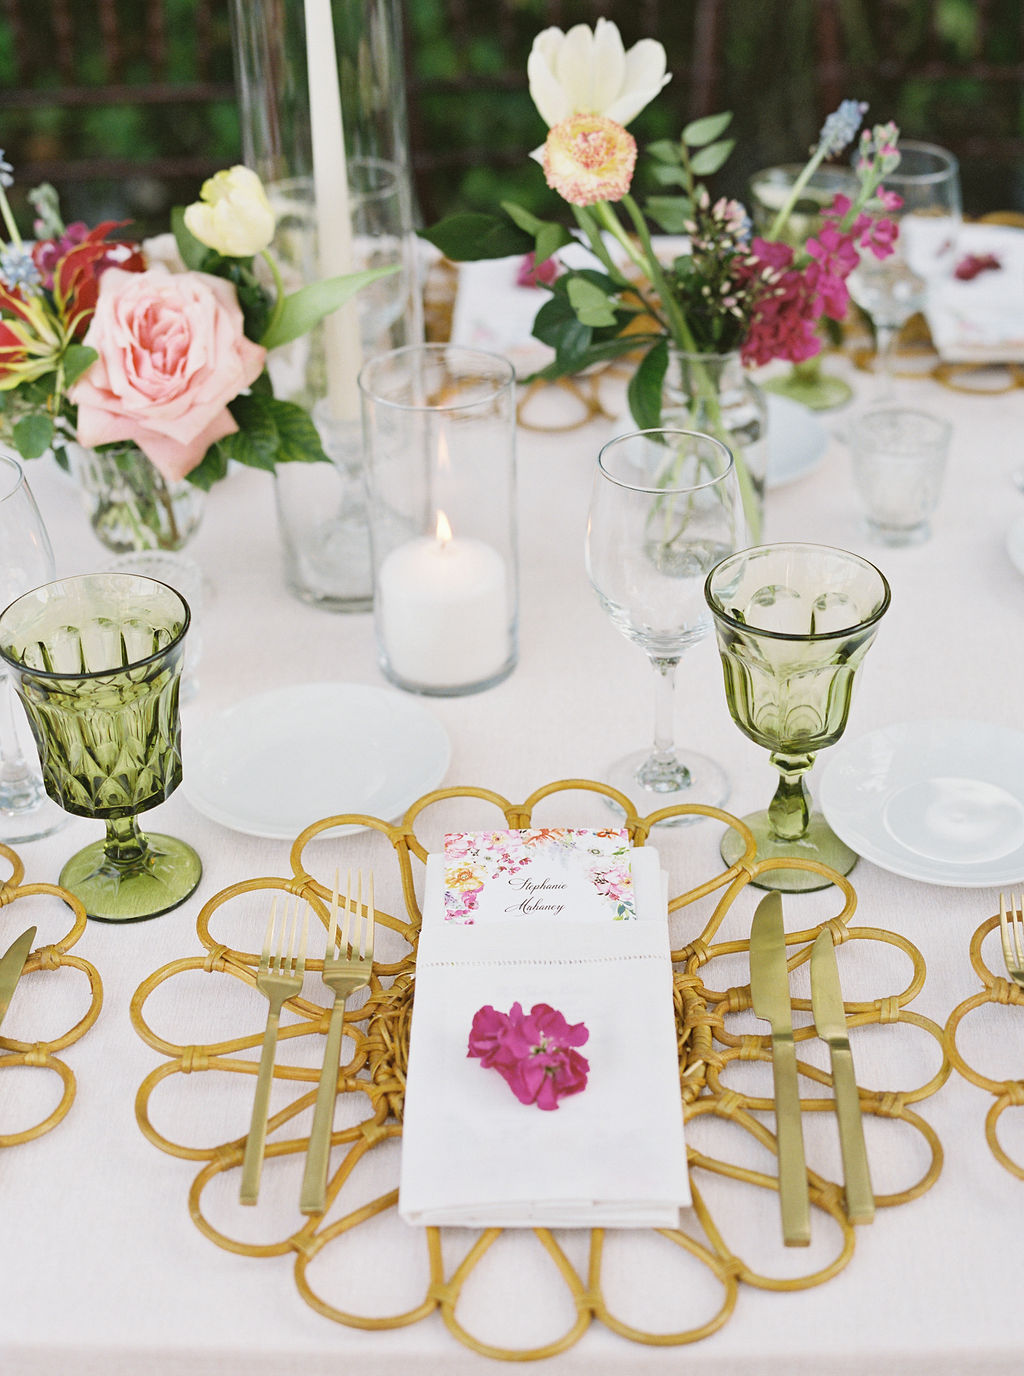 elegant wedding place setting with flower shaped charger and floral accents